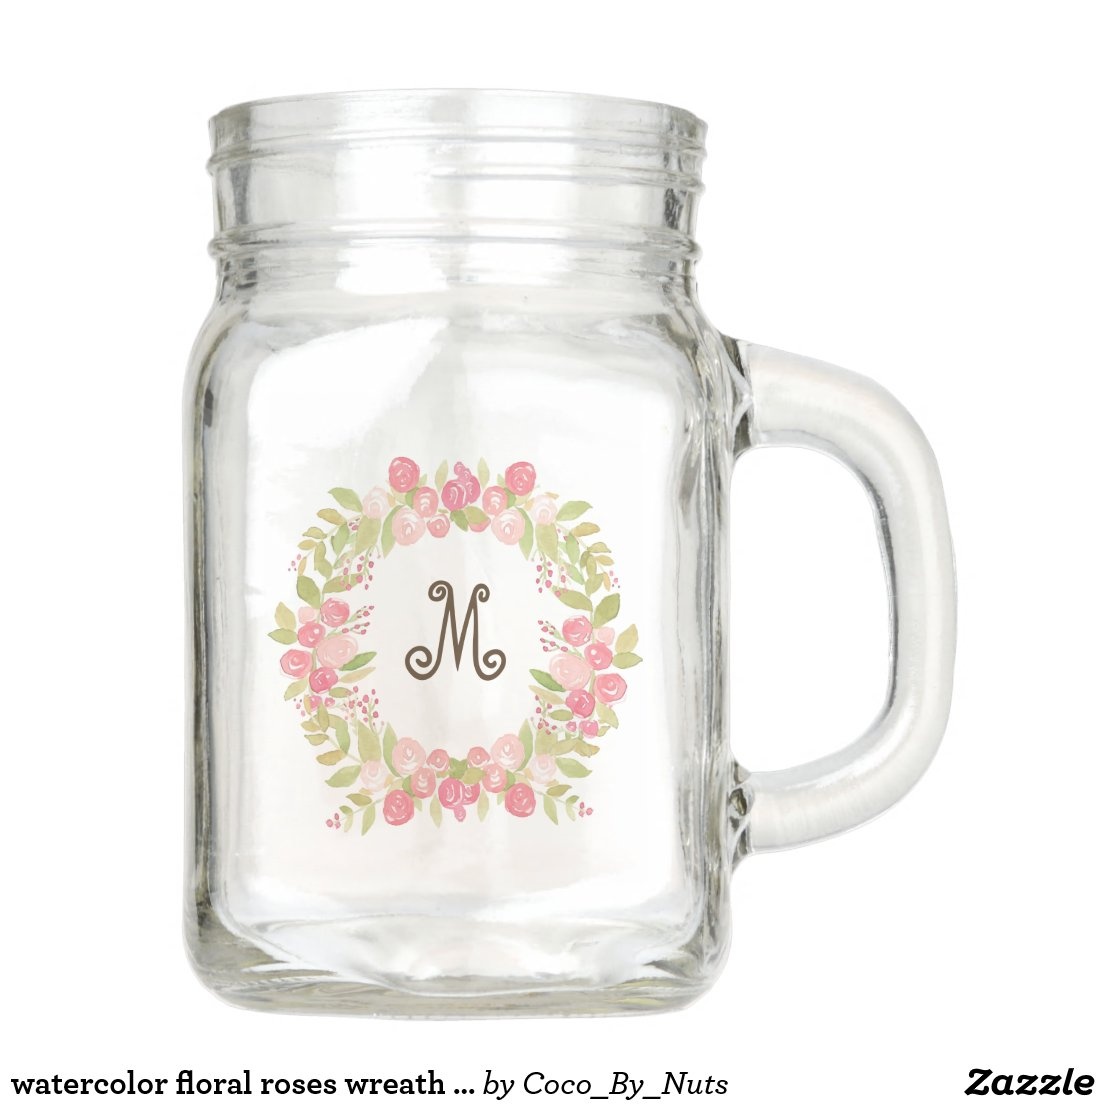 watercolor floral roses wreath monogram mason jar